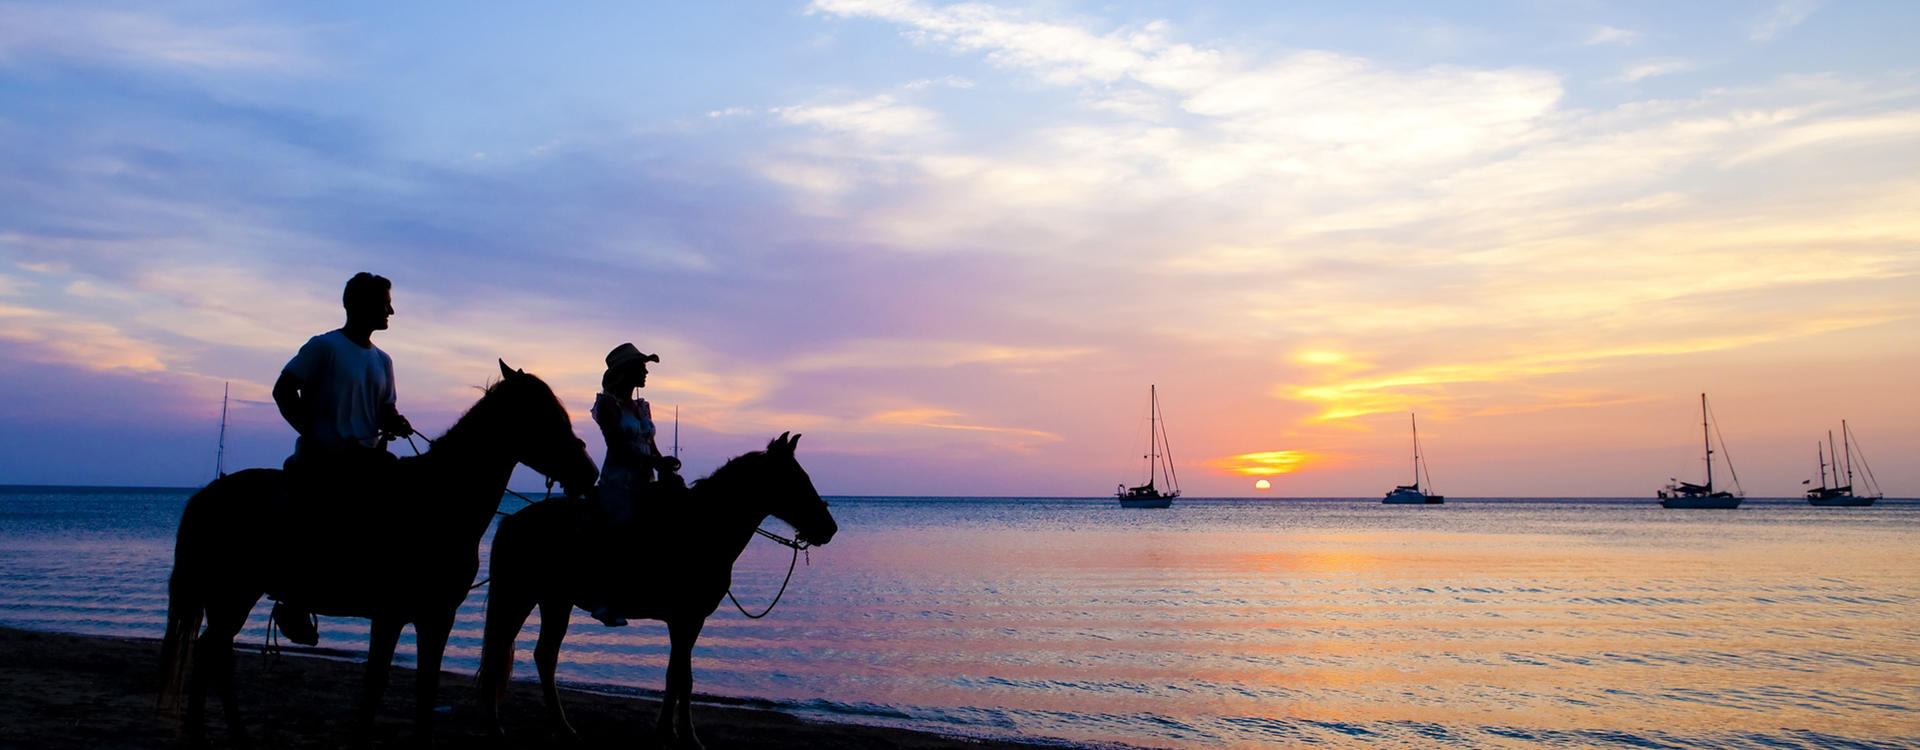 KI-Cabrits_Sunset-beach-Horse-Riding